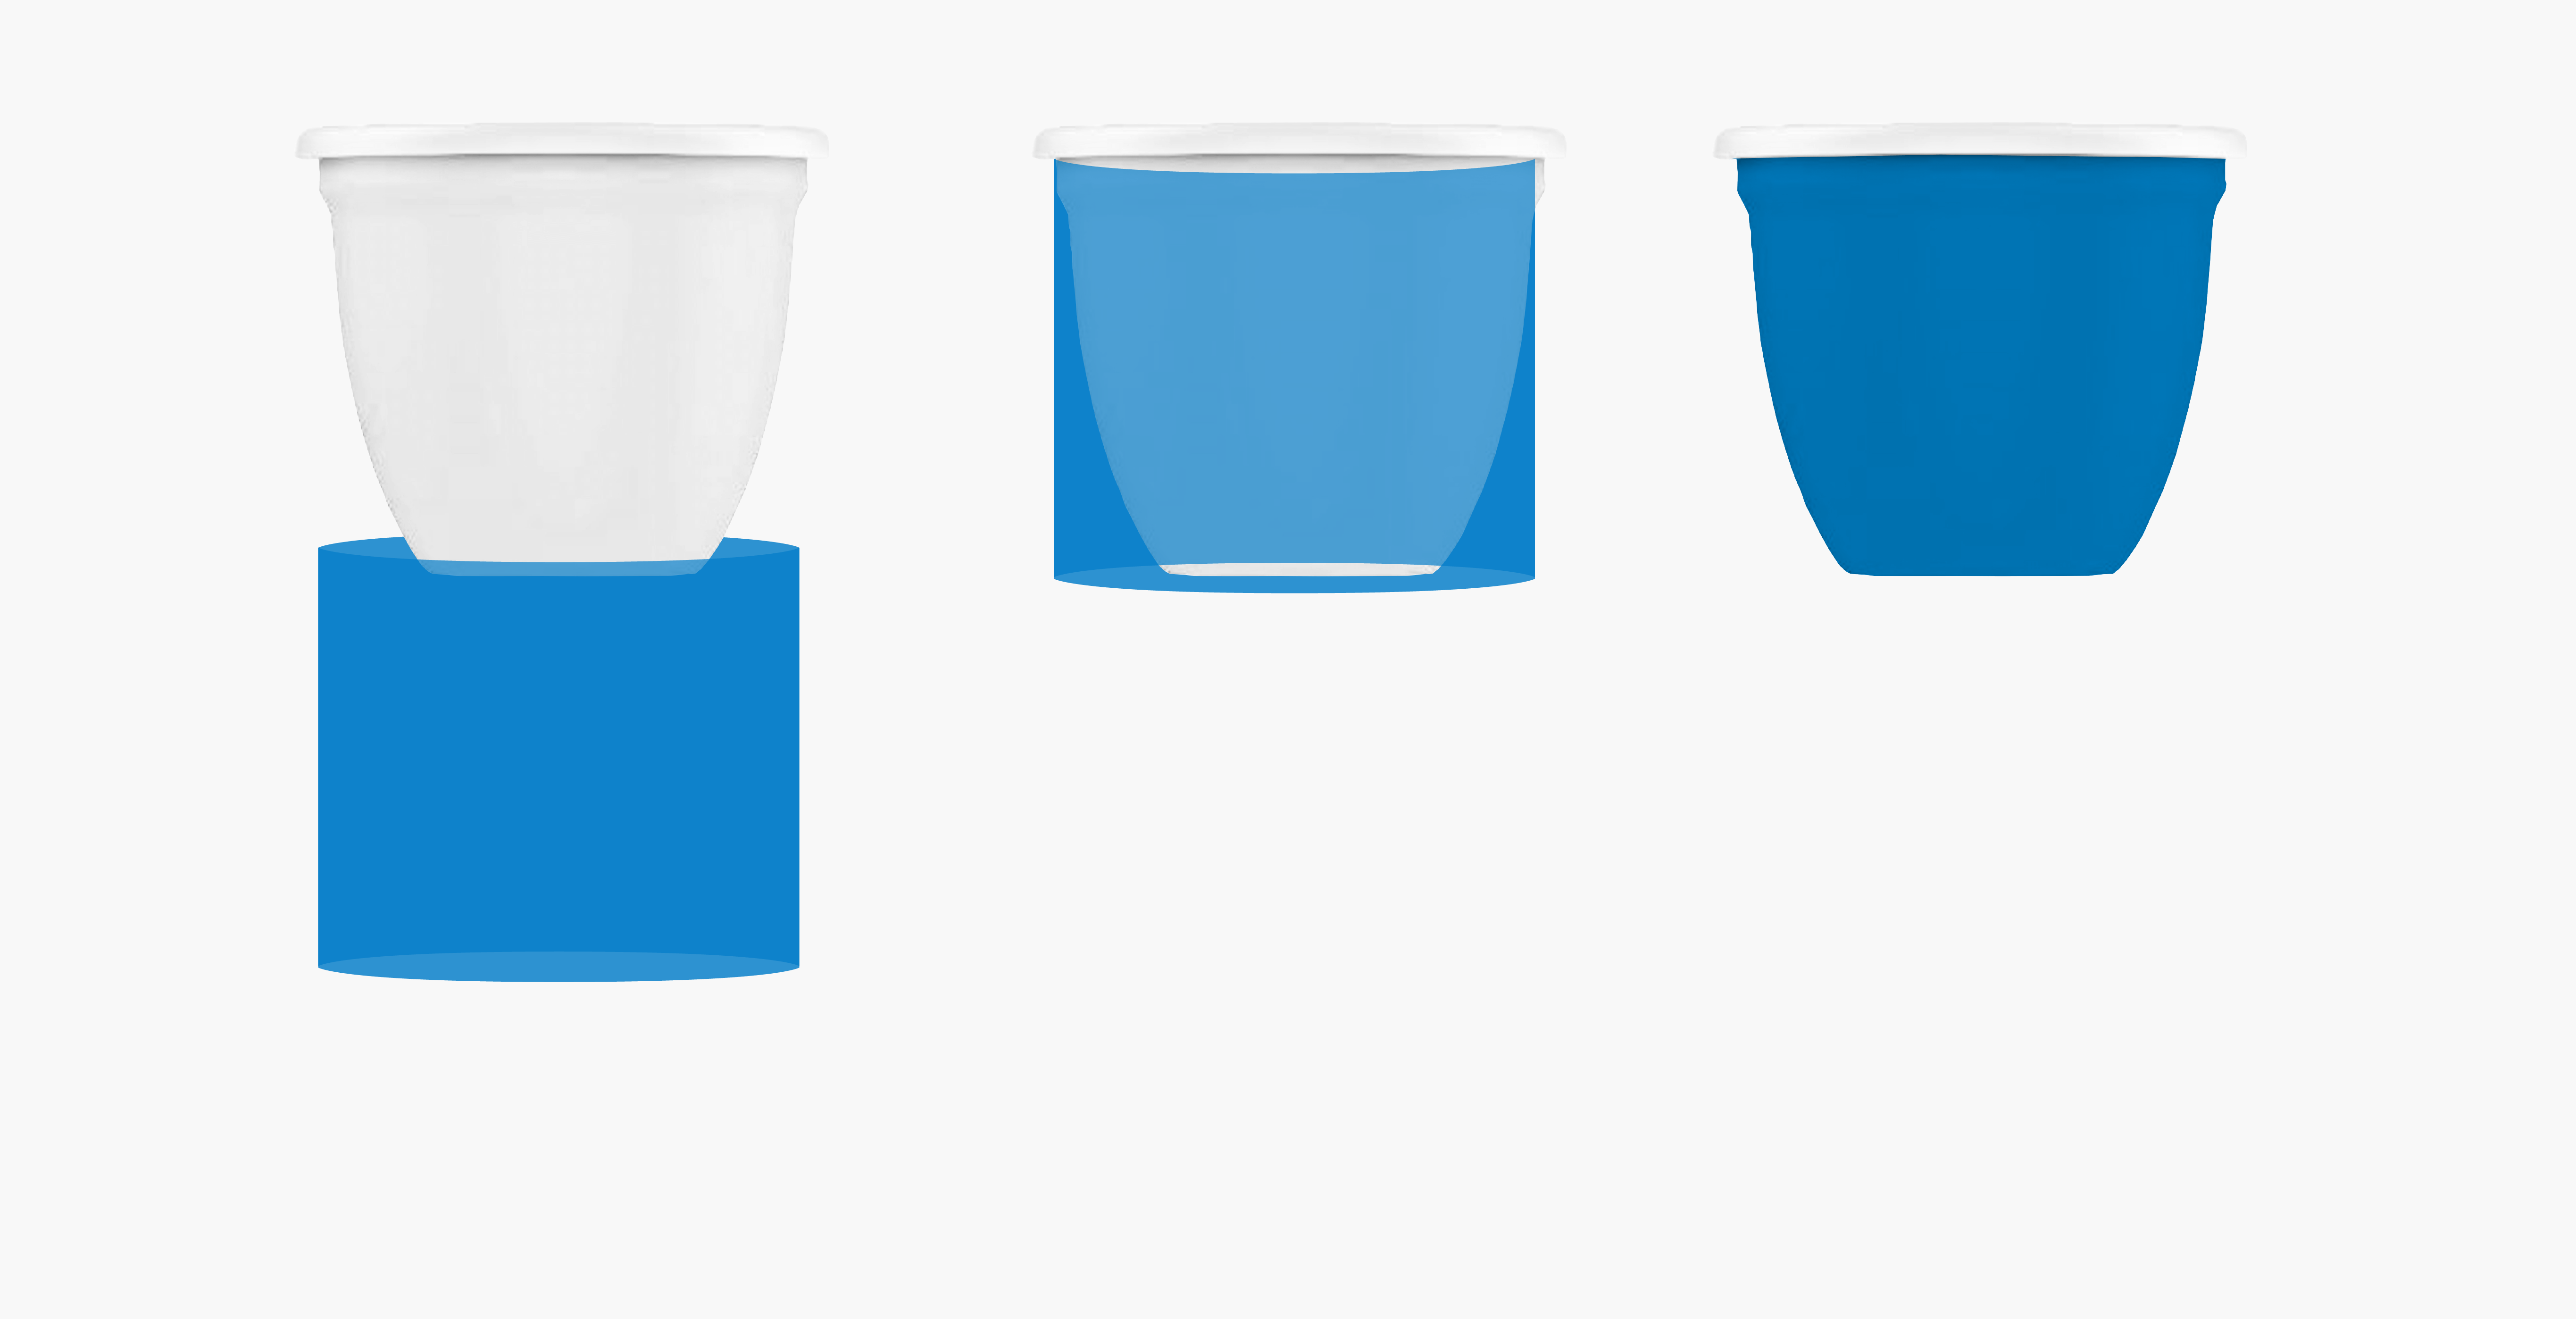 Illustration of the differentiated application and shrinking of the Sleeve label from underneath the food jars